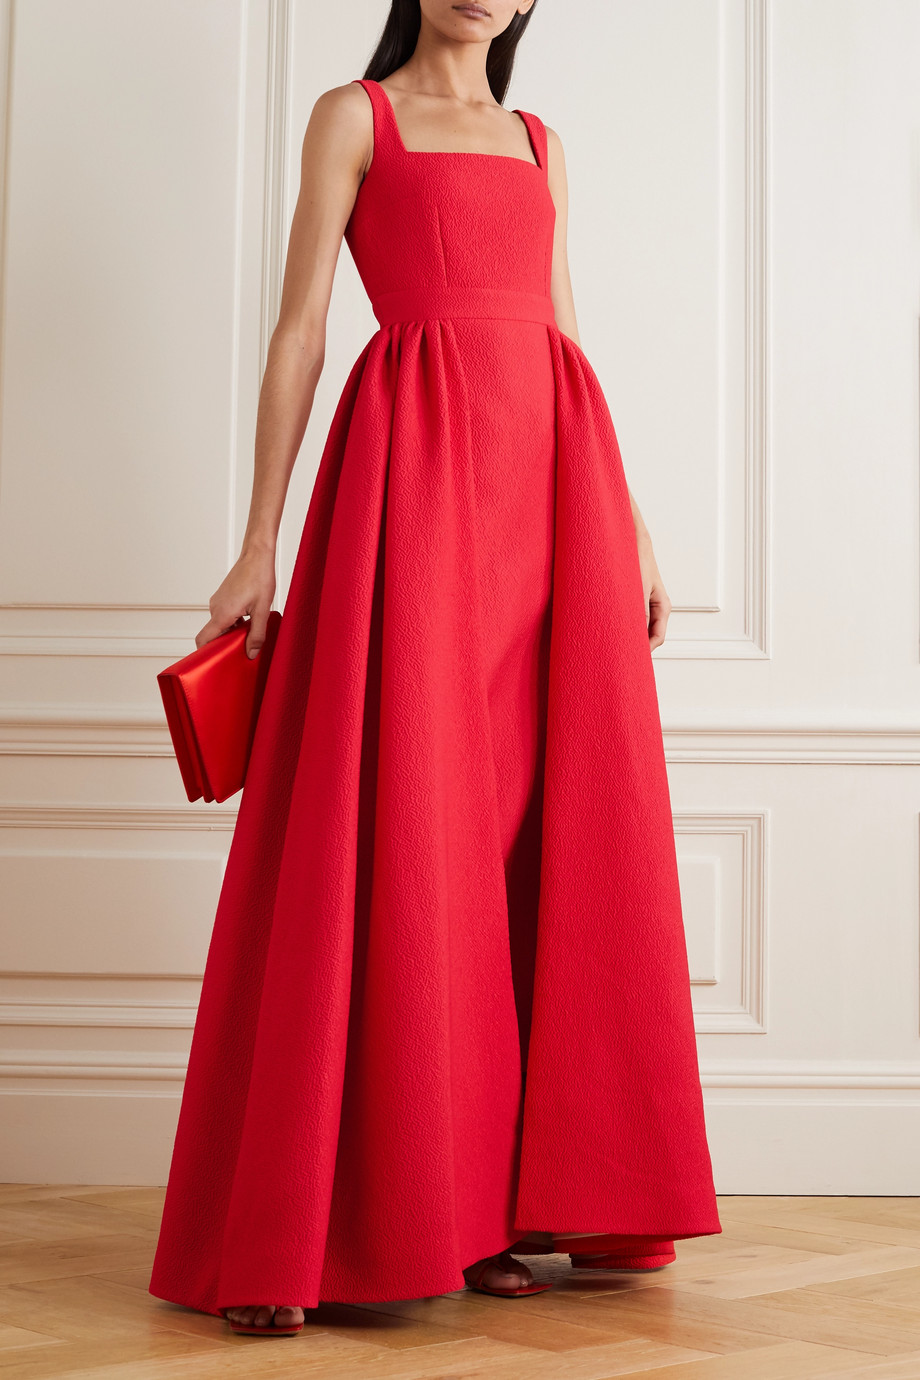 Emilia Wickstead Seaton draped cloqué gown